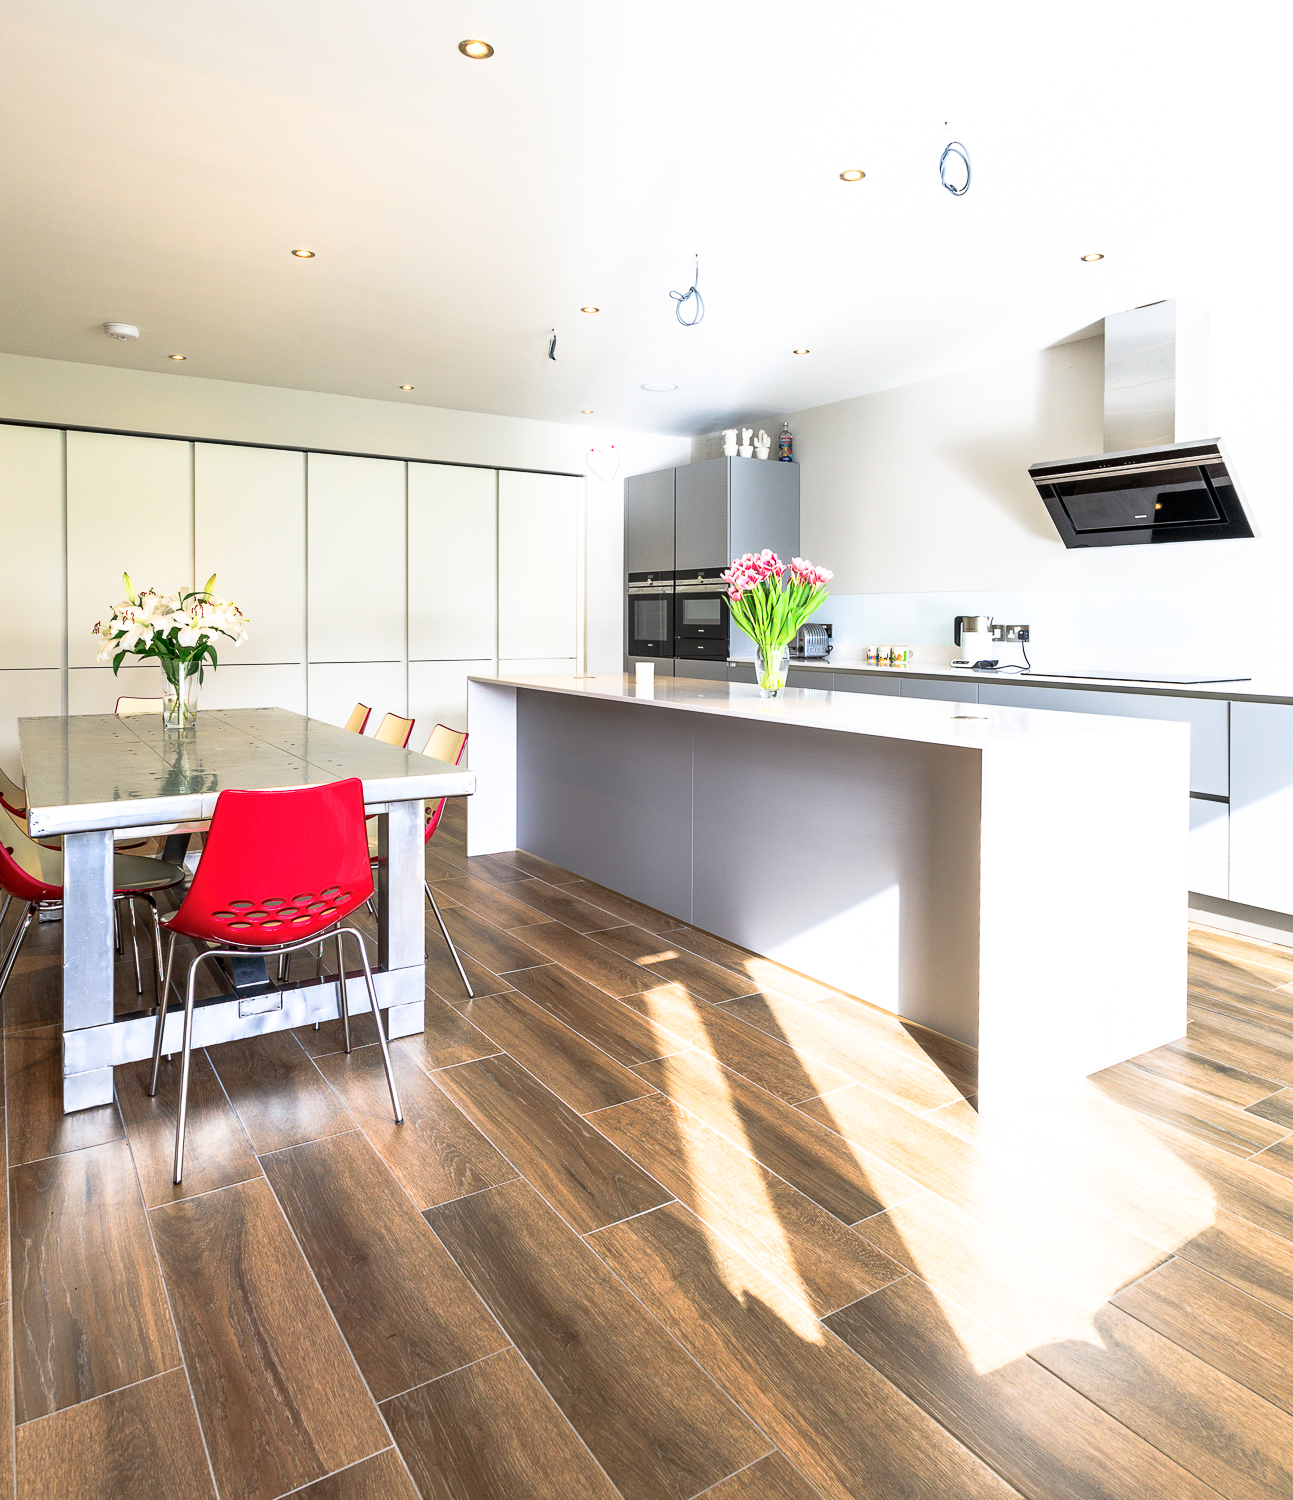 Kitchens Sheffield Brought To You By Expert Kitchen